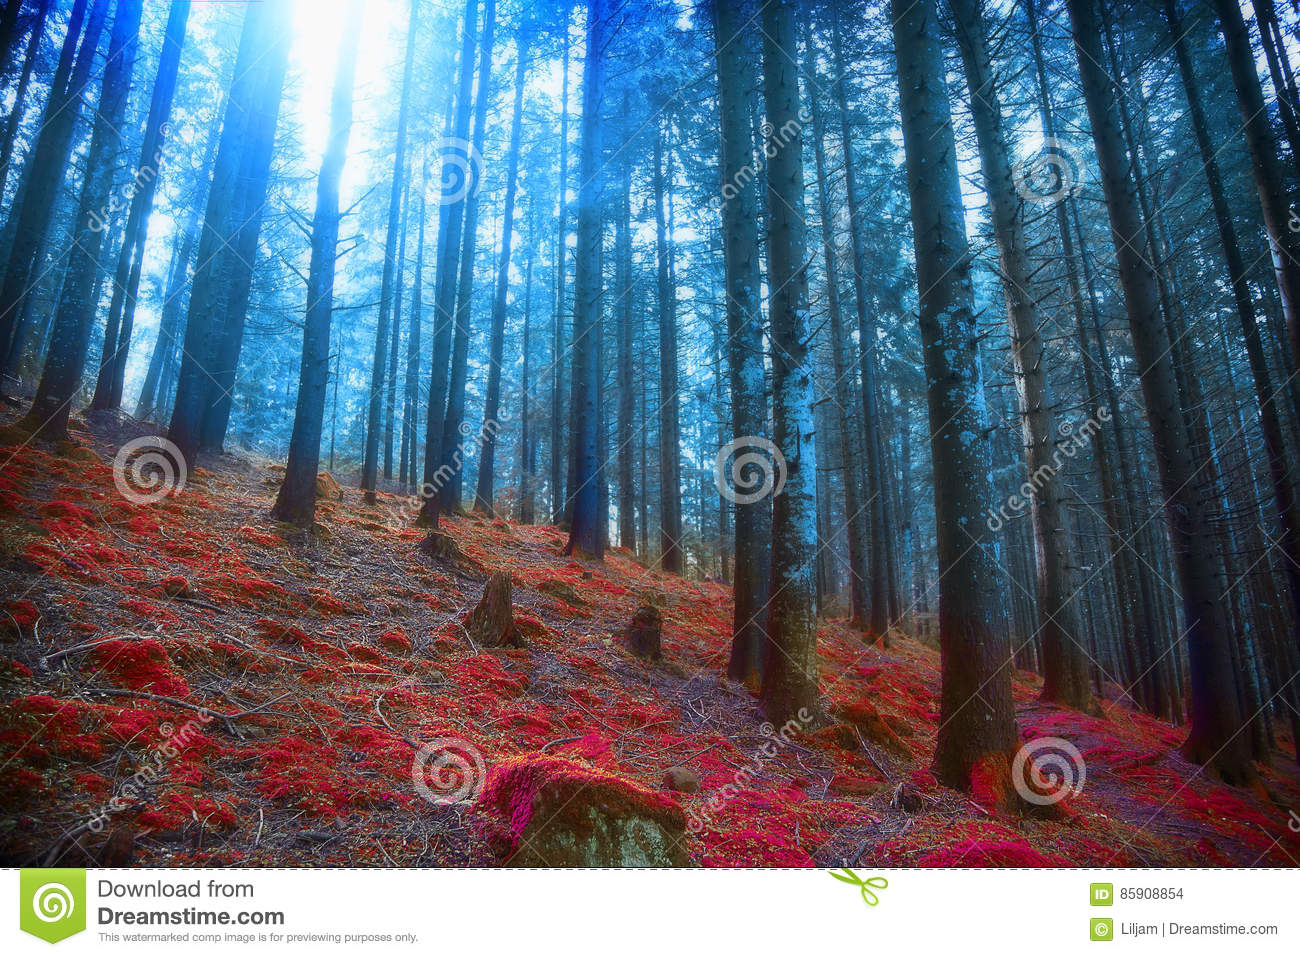 Gloomy surreal woods with lights and red moss, magic fairytale s